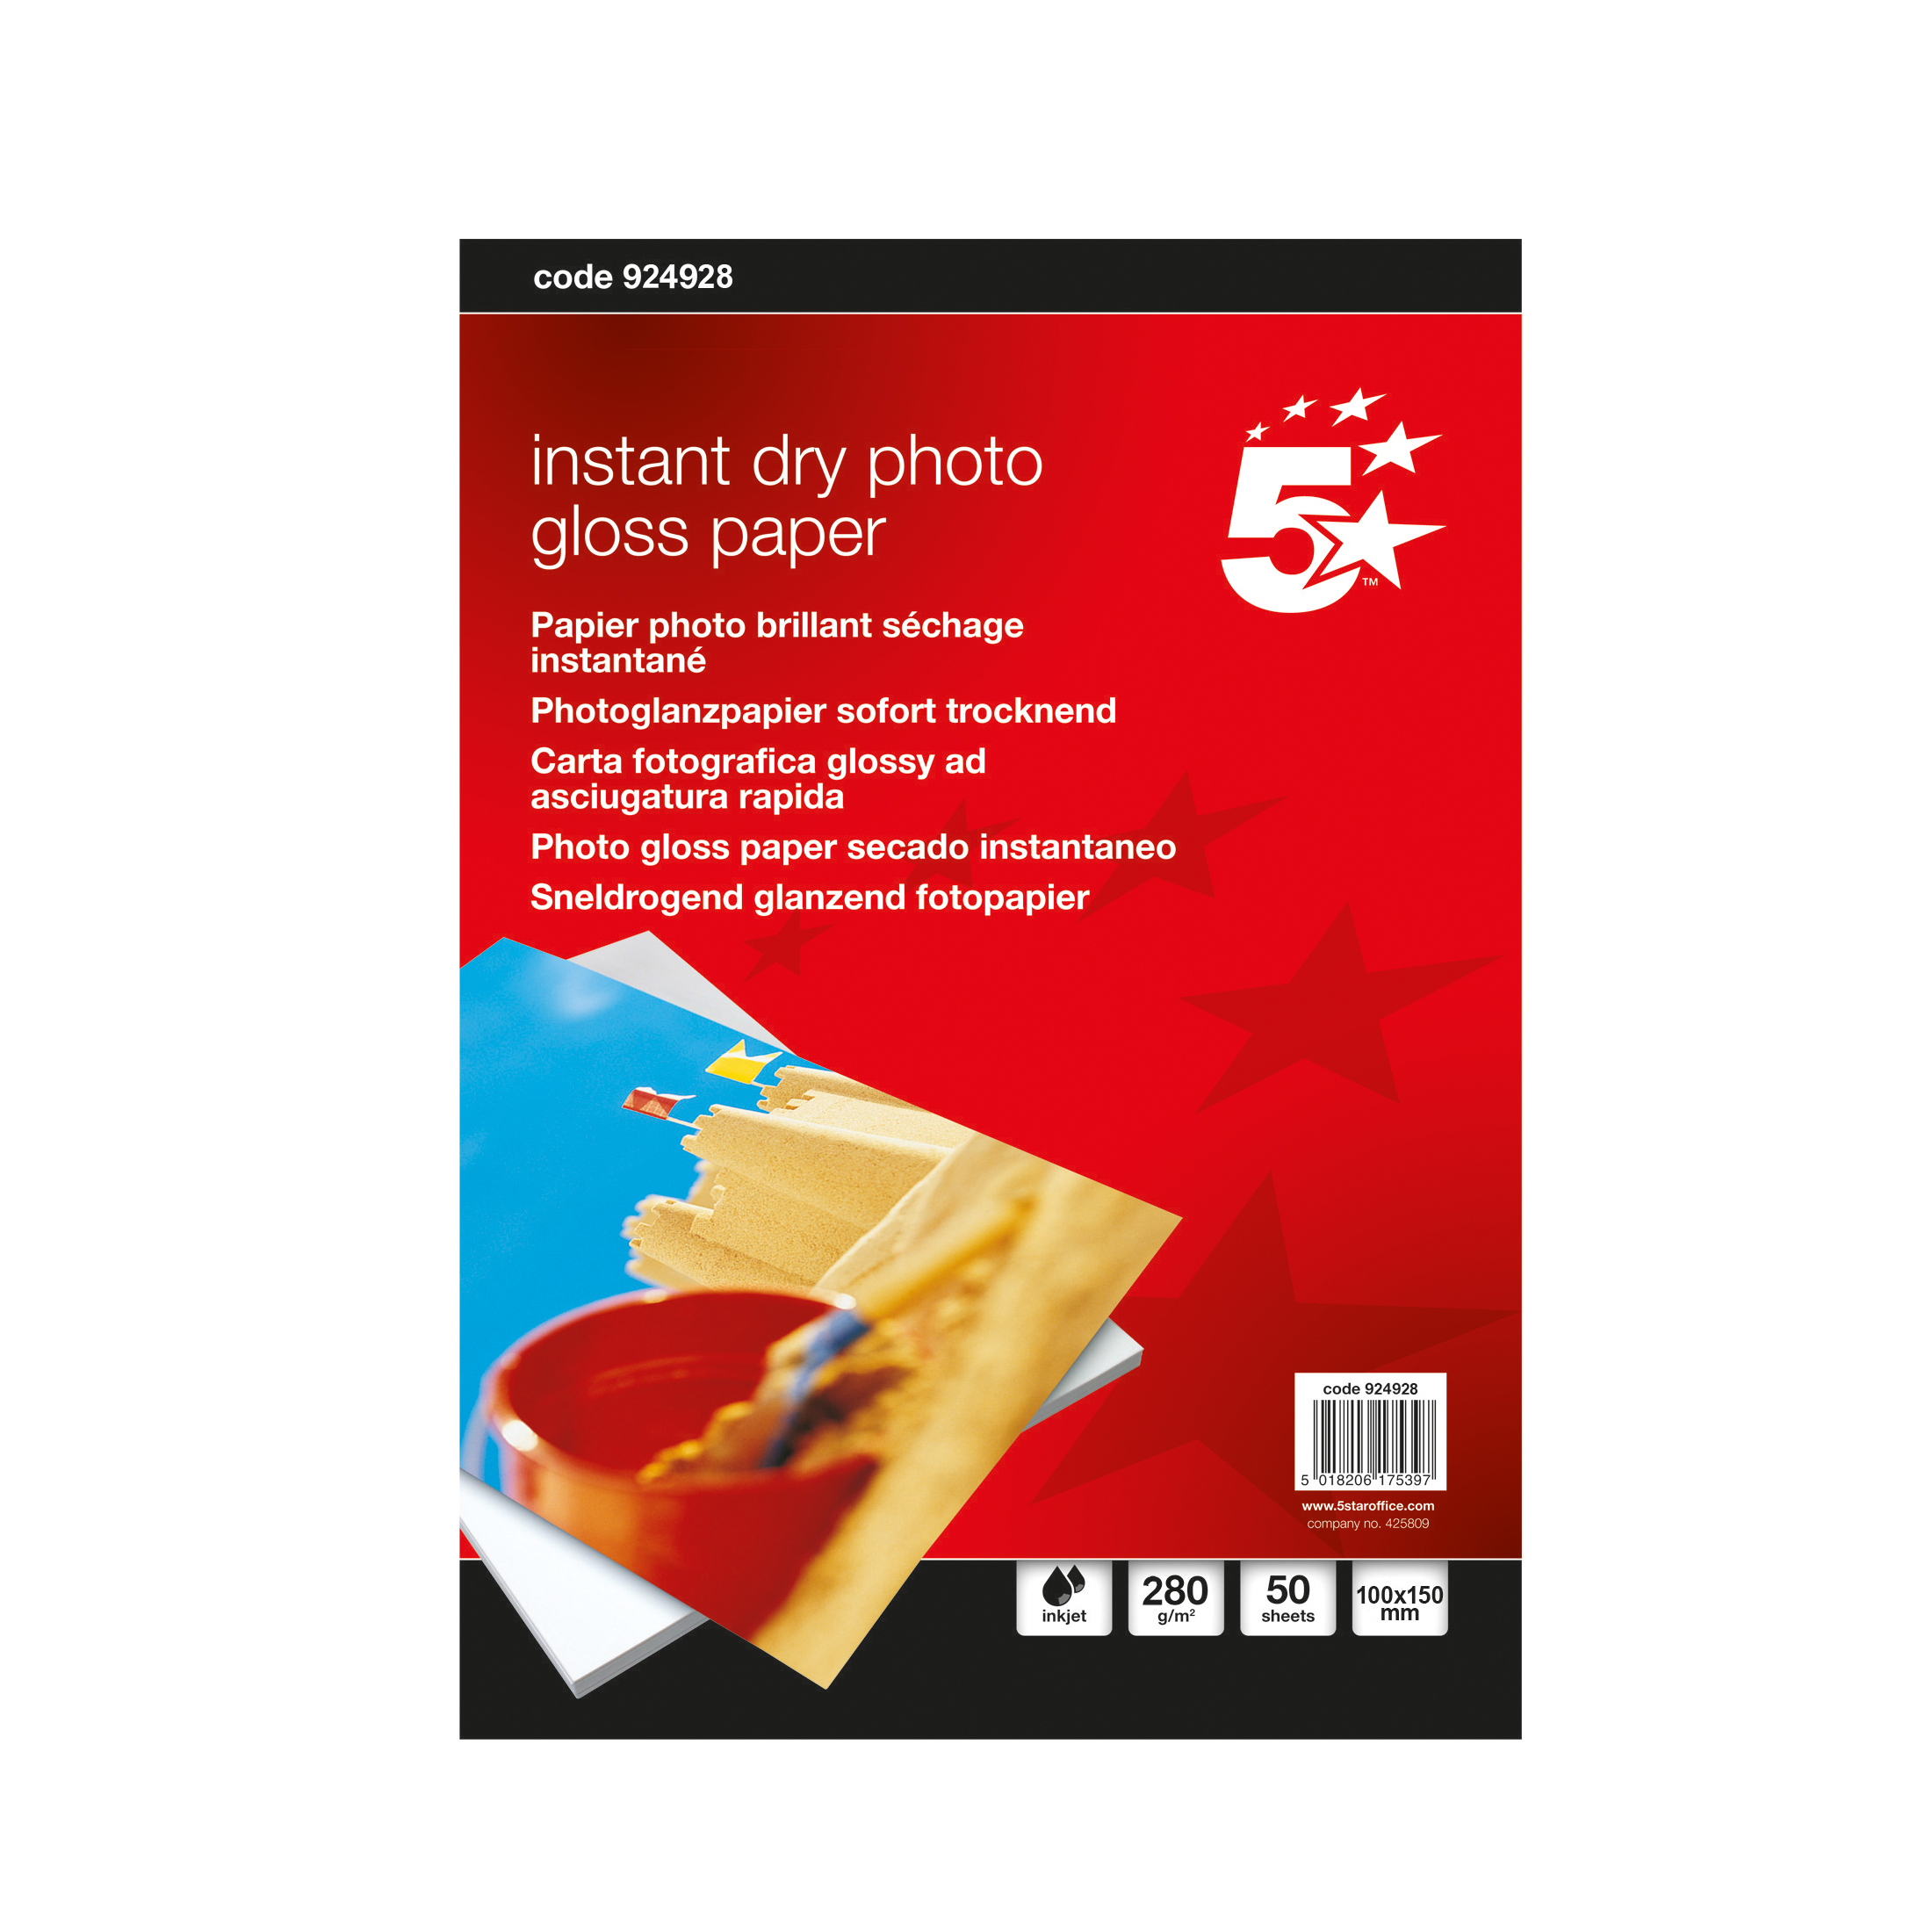 5 Star Office Paper Inkjet Photo Gloss Fast Drying 280gsm 100x150mm [50 Sheets]